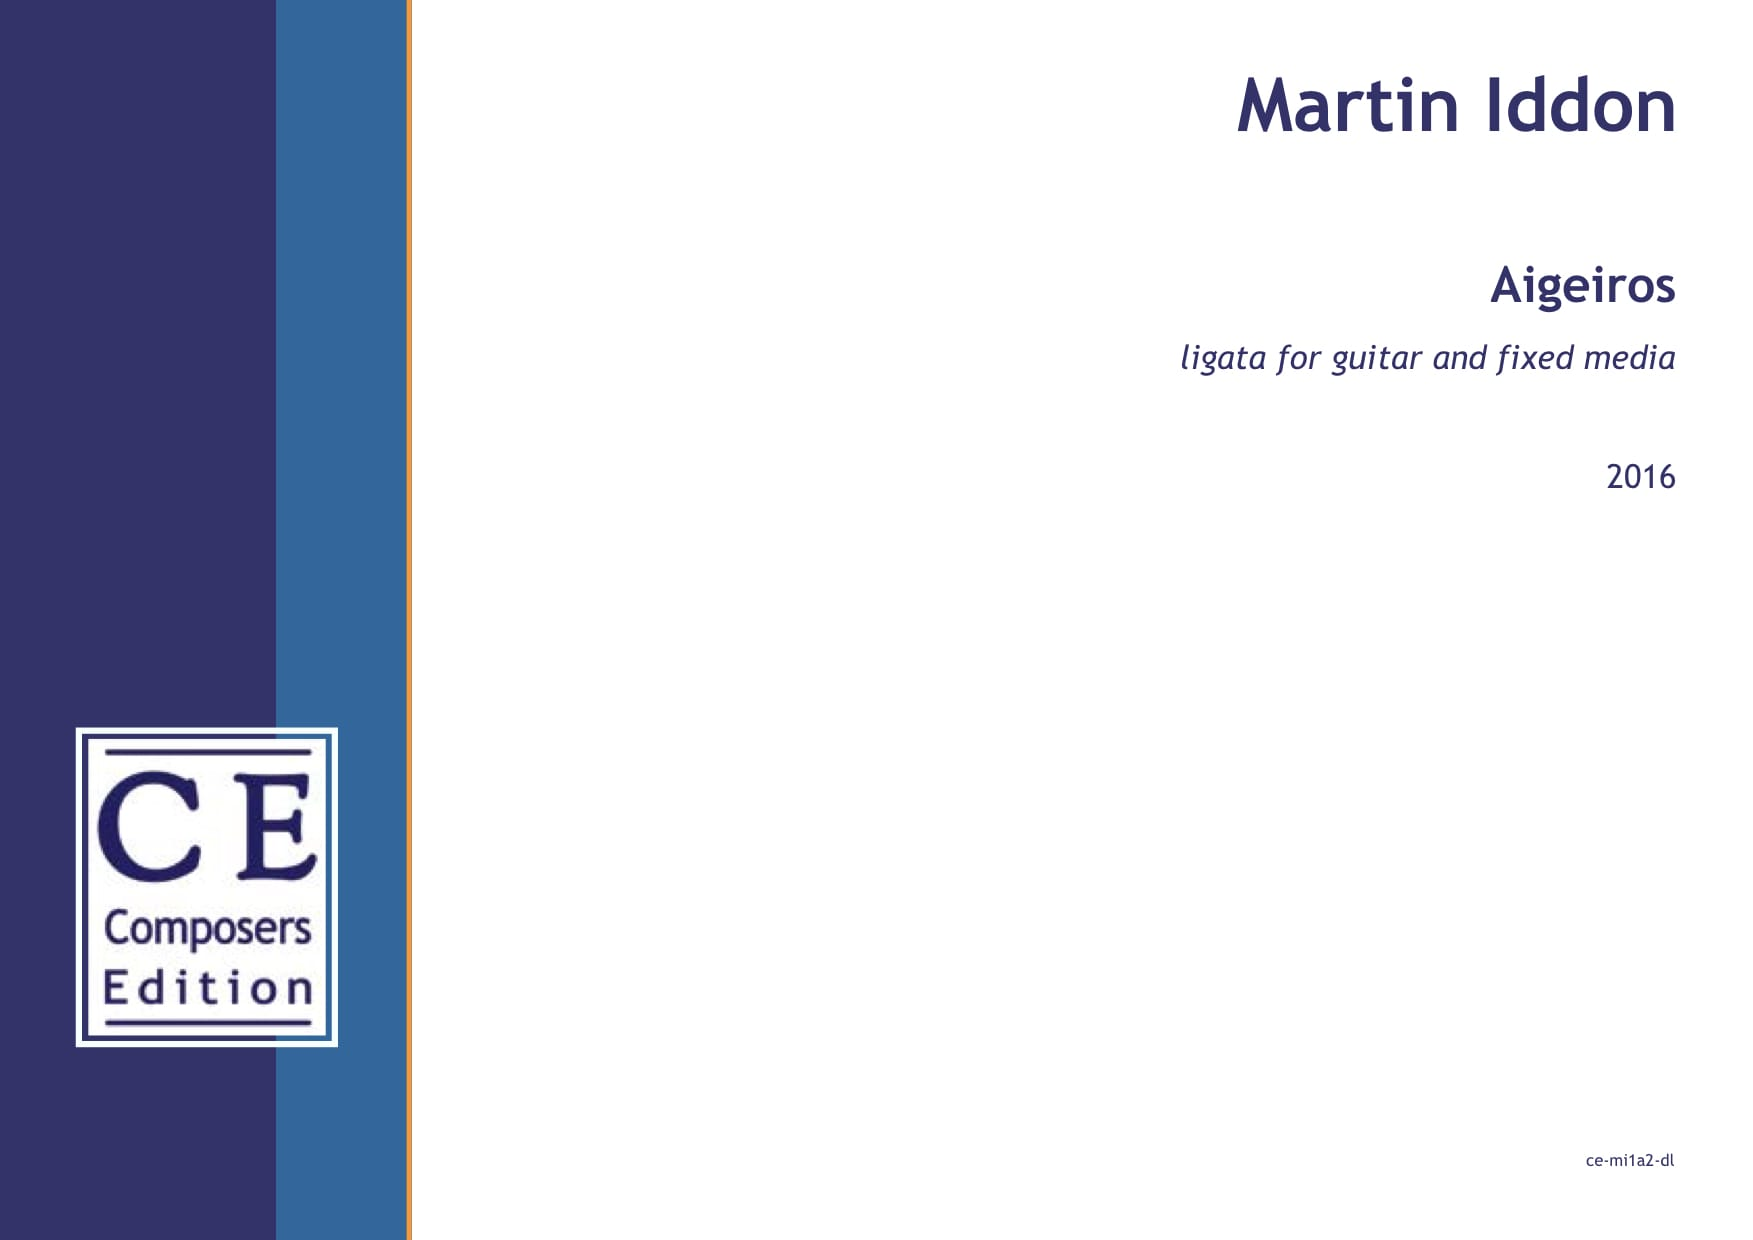 Martin Iddon: Aigeiros ligata for guitar and fixed media